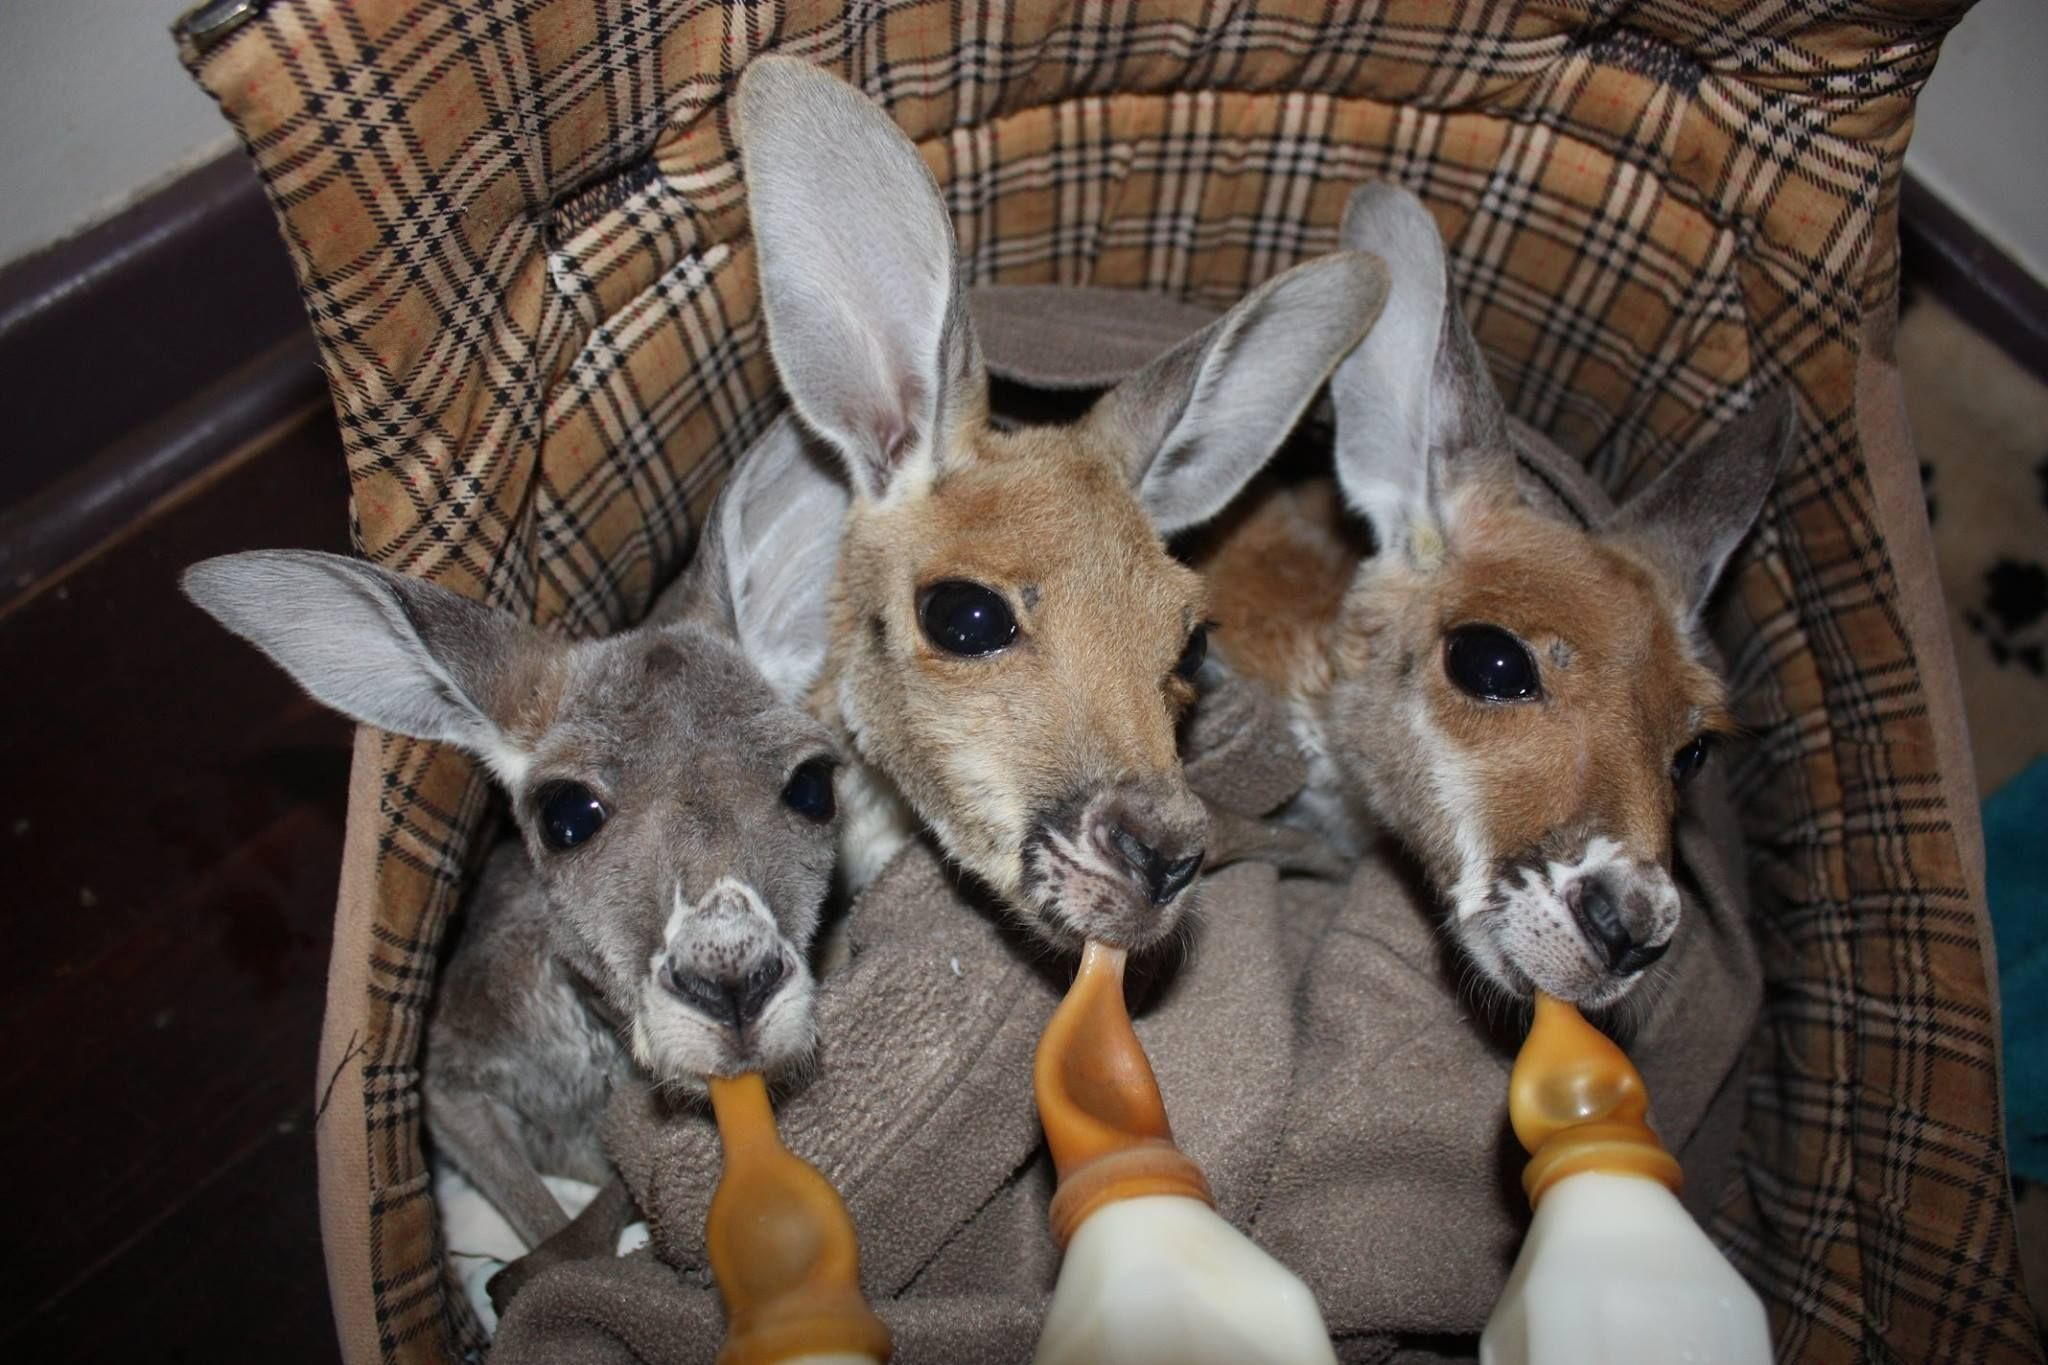 Baby Roos At The Kangaroo Sanctuary Alice Springs Thanks To - Kangaroo sanctuary alice springs